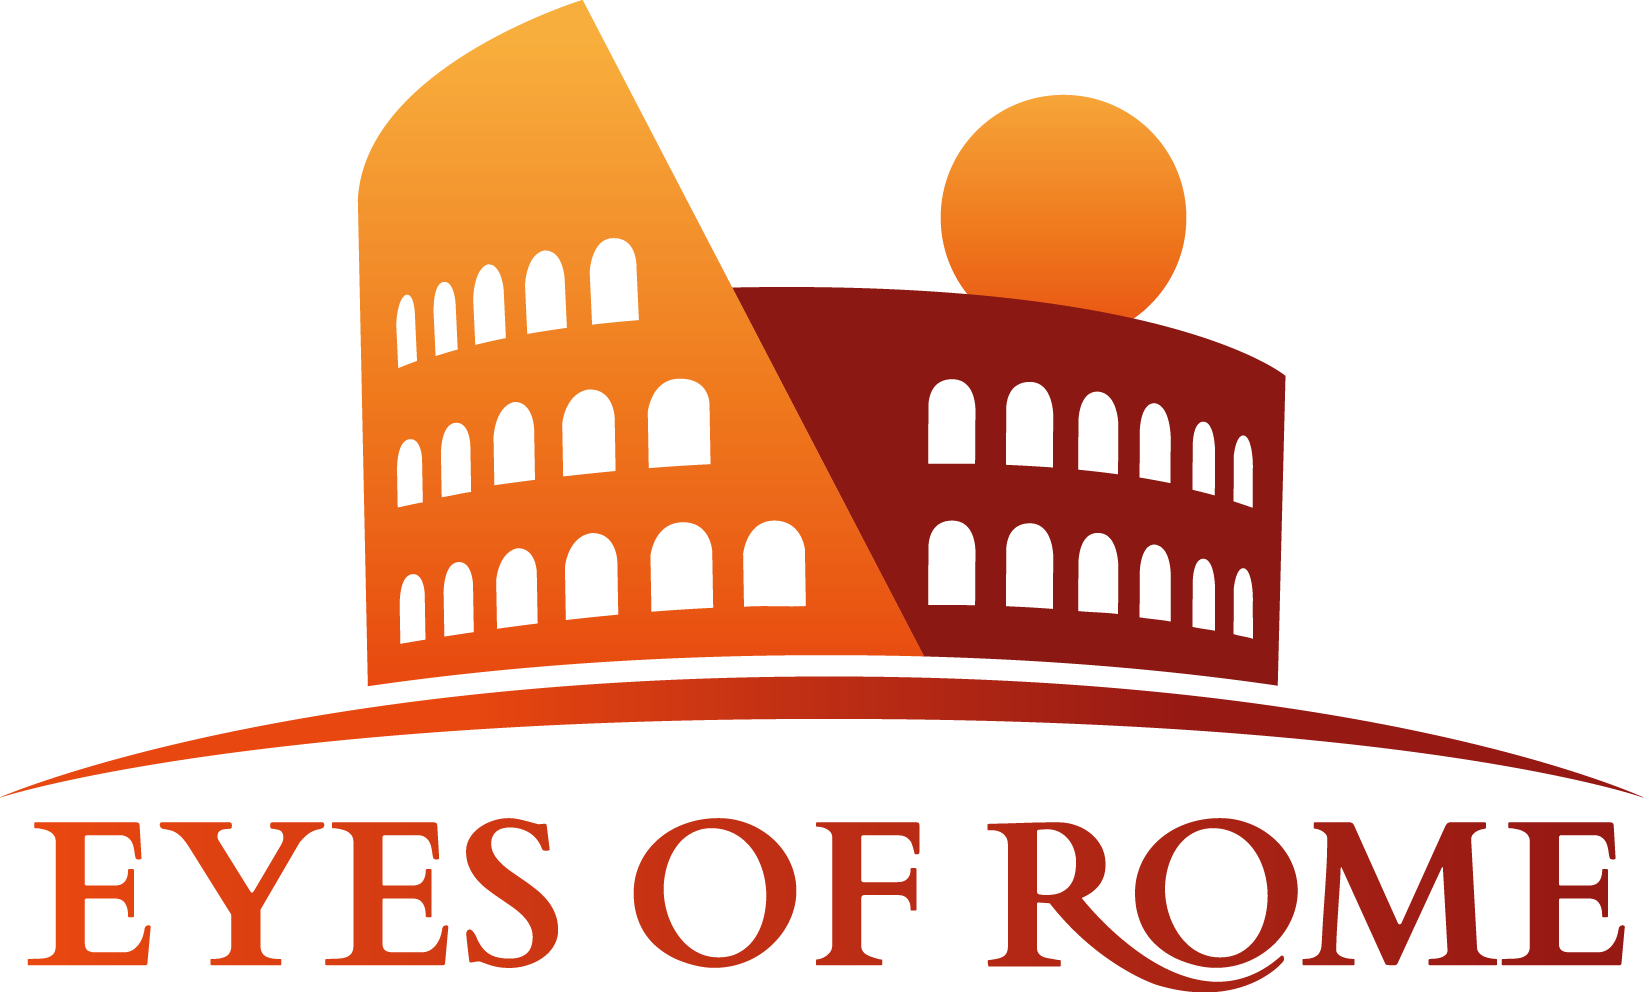 Dress Code And Photography Regulations Eyes Of Rome Help